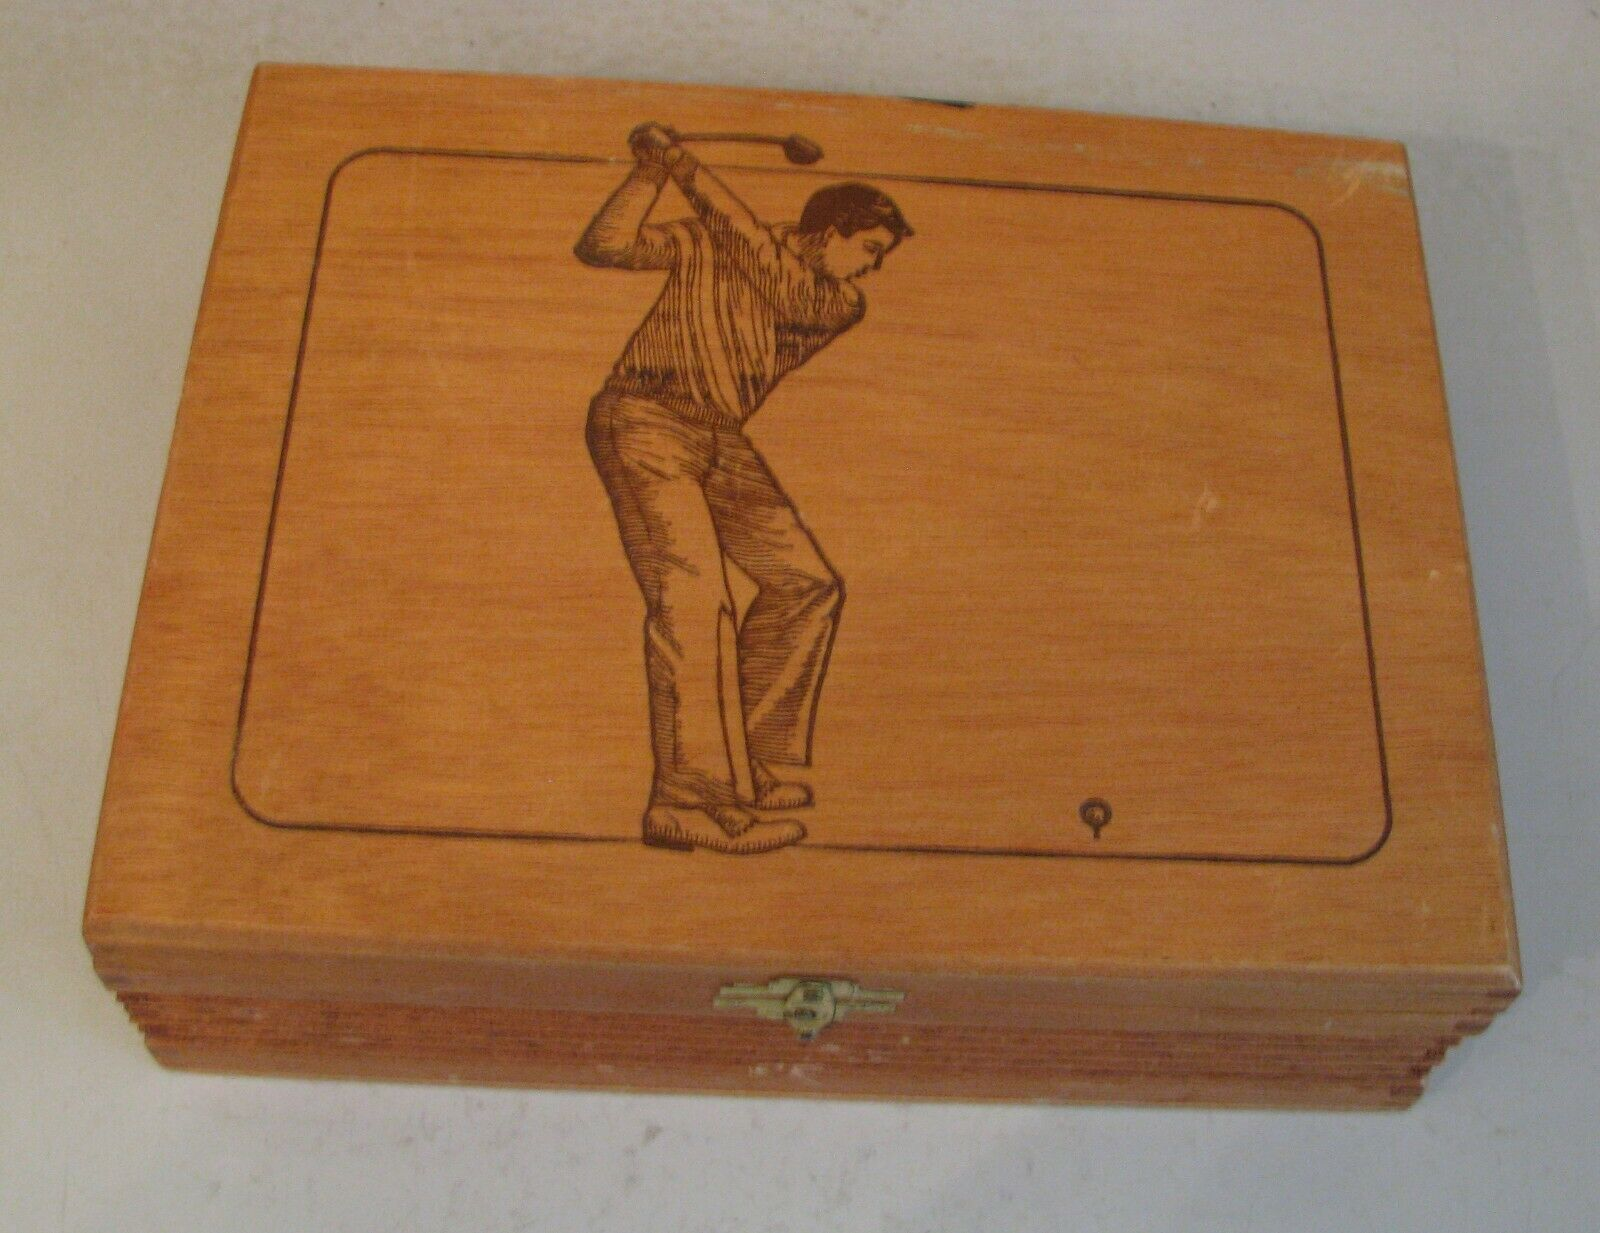 Primary image for GOLF Vintage House of Windsor Palmas Empty Wood Cigar Box w GOLFER on Lid